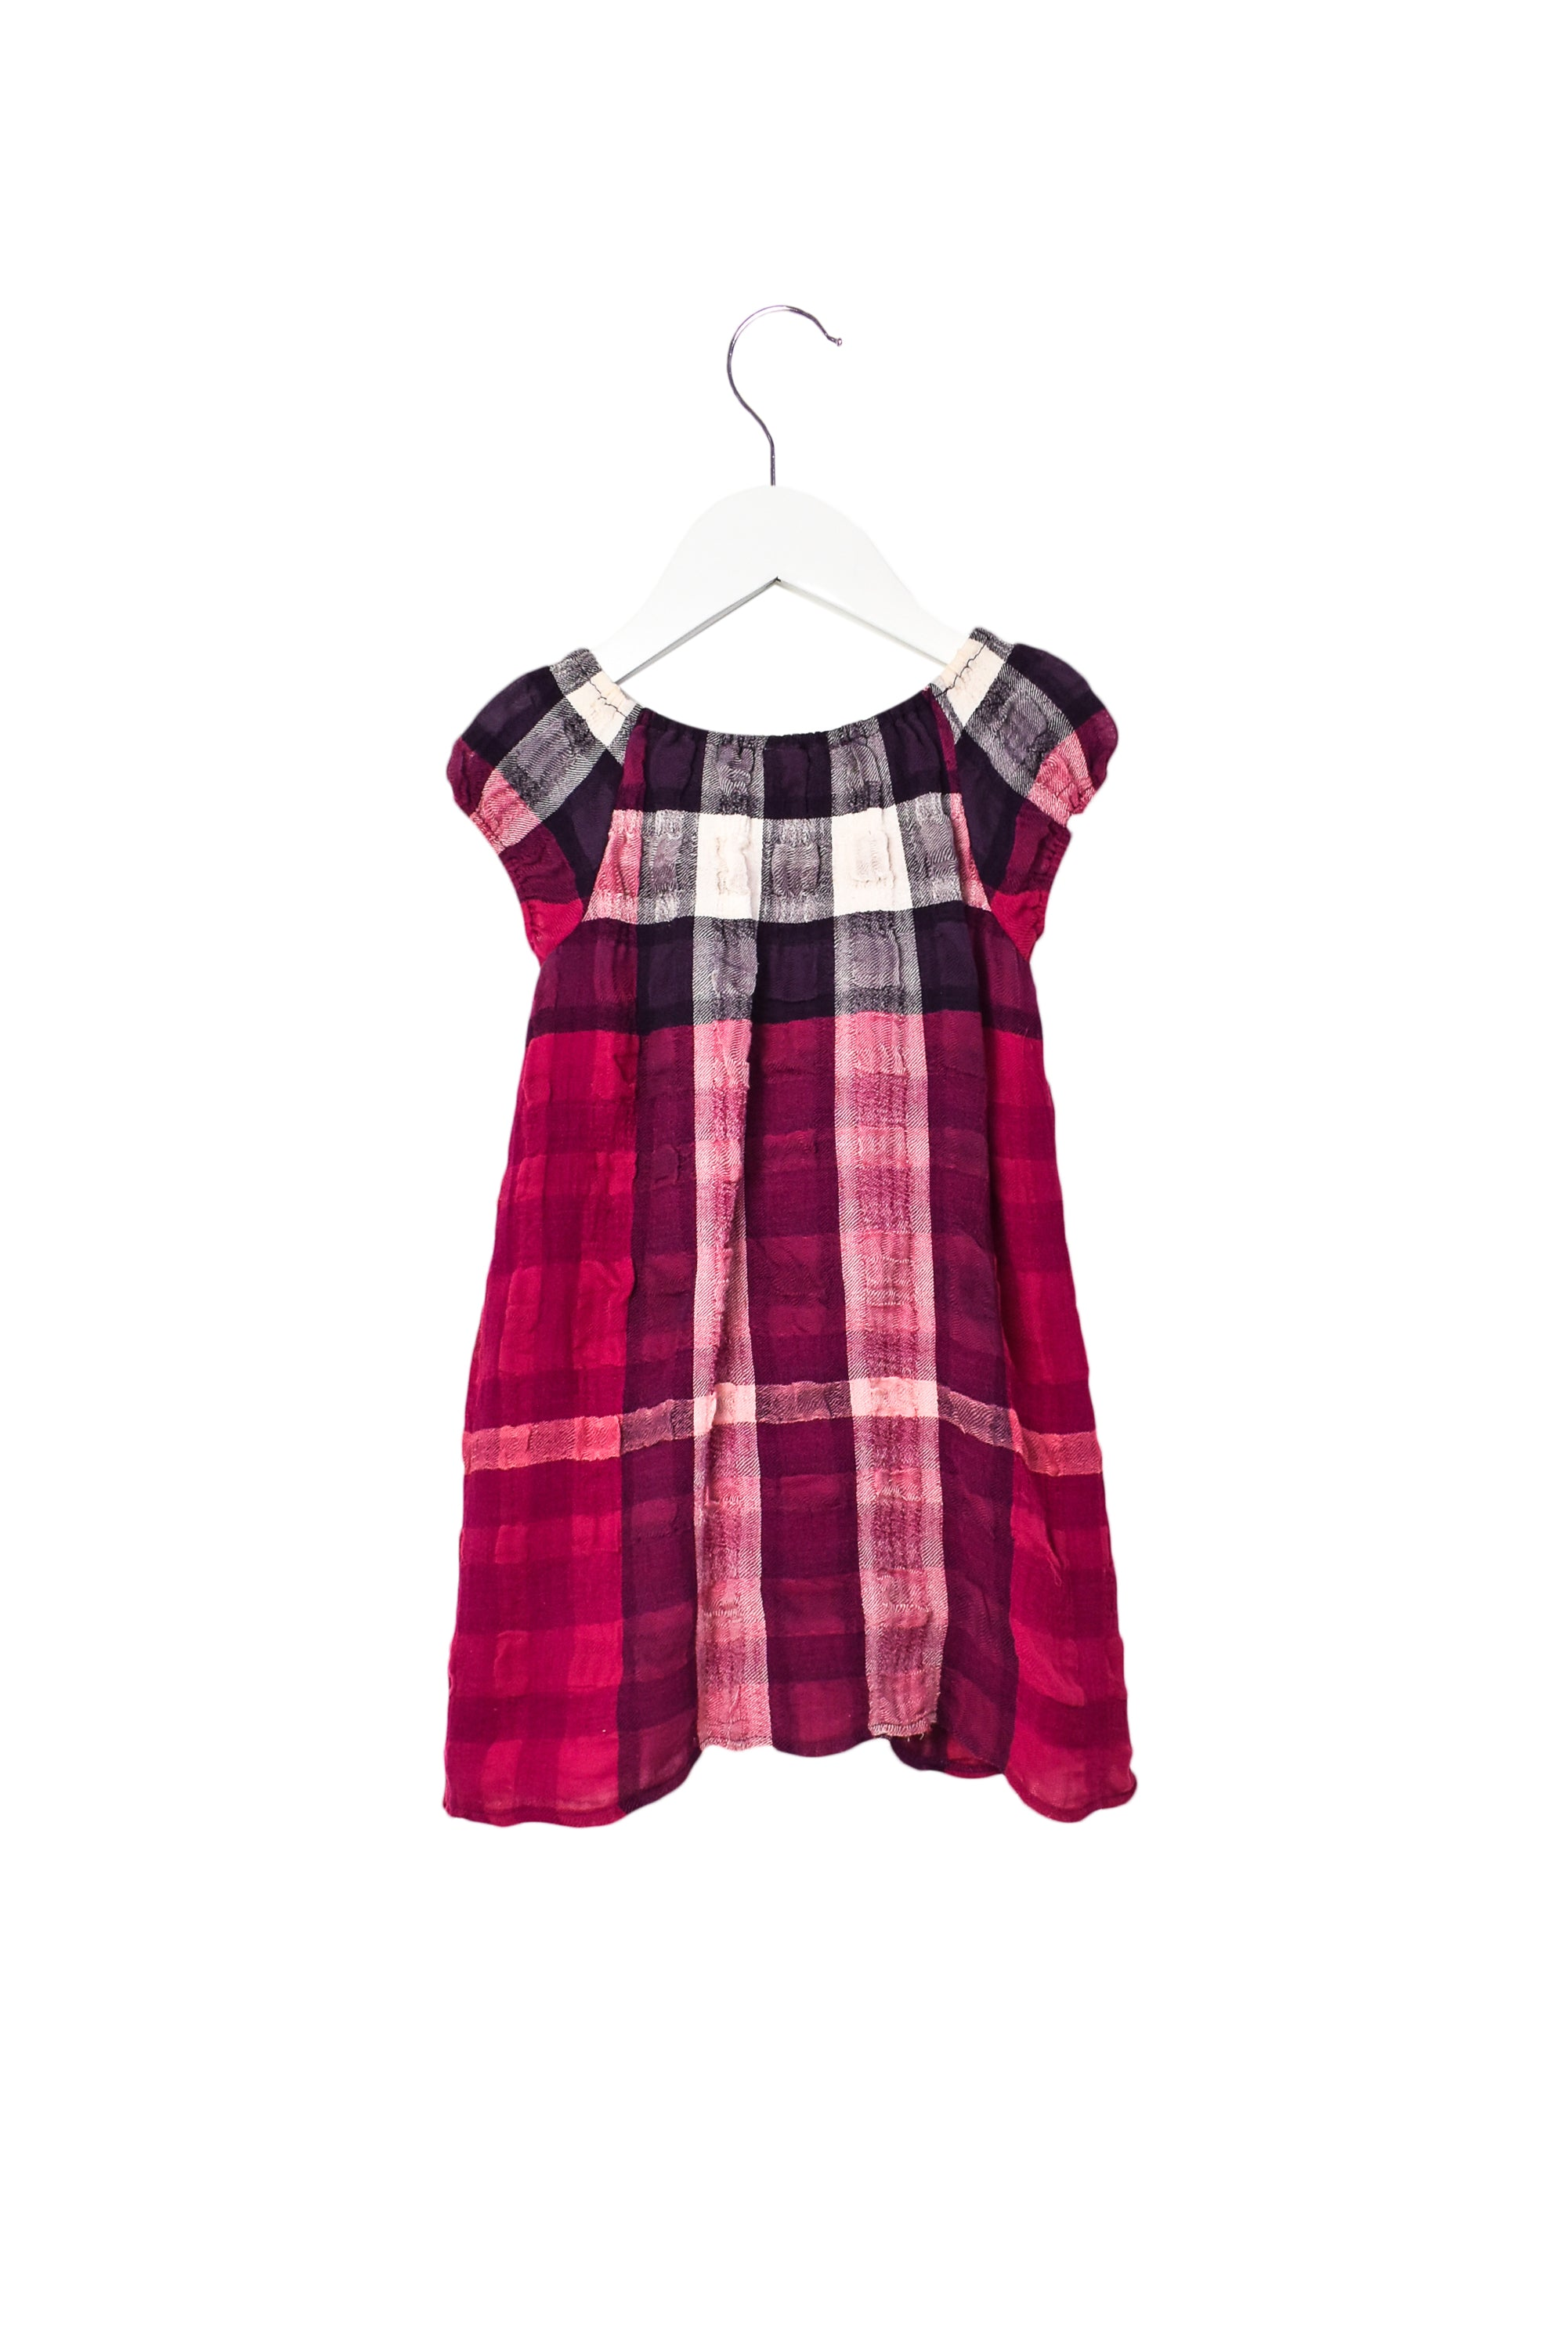 10007784 Burberry Kids~ Dress 3T at Retykle